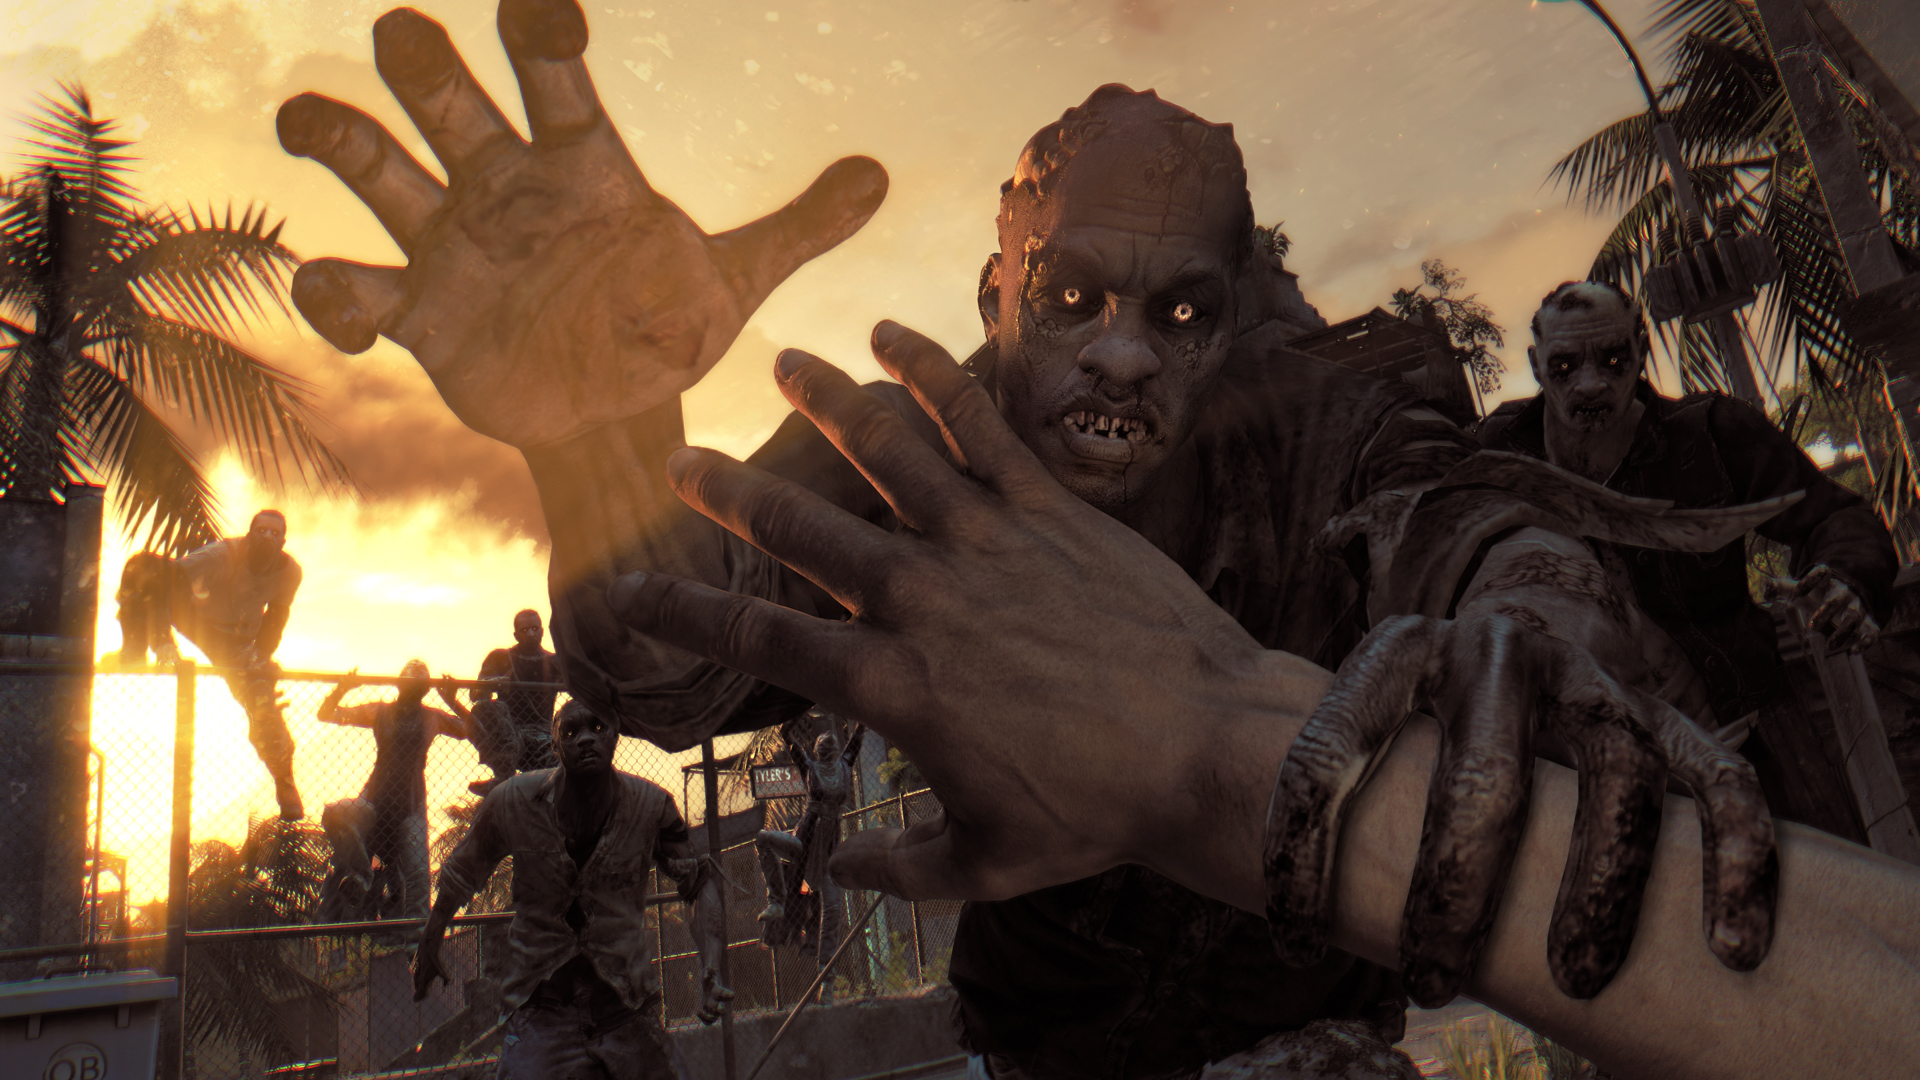 Dying light Zombie Attack Game Novelty Wallpaper Background Full 1920x1080